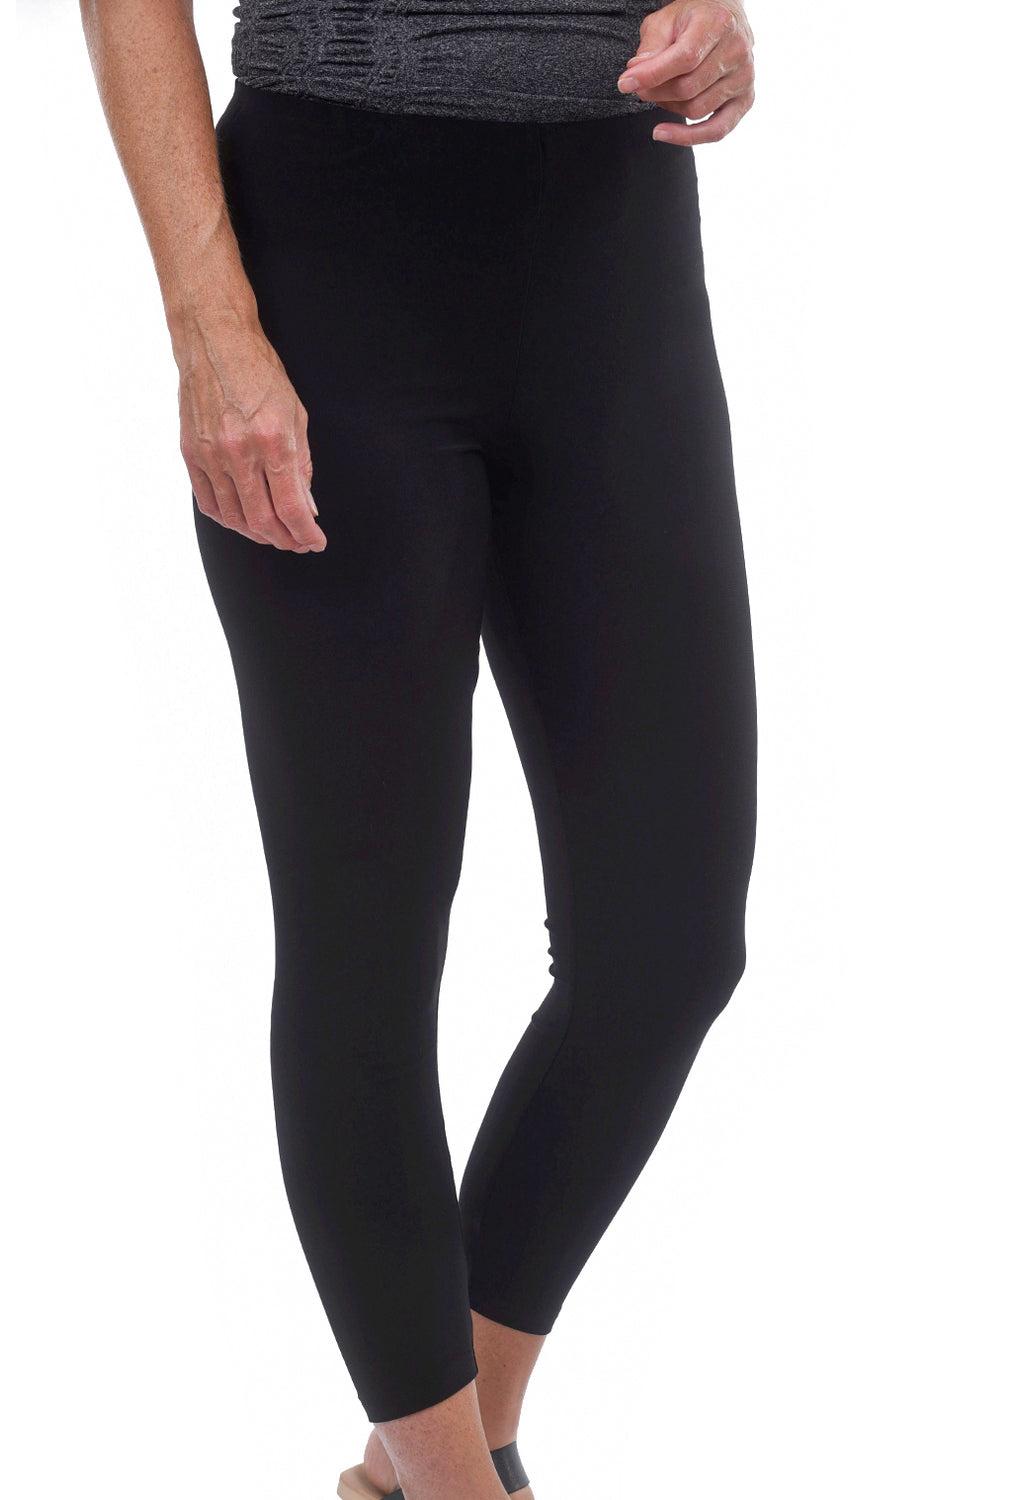 Sympli Clothing Sympli Basic Legging, Black